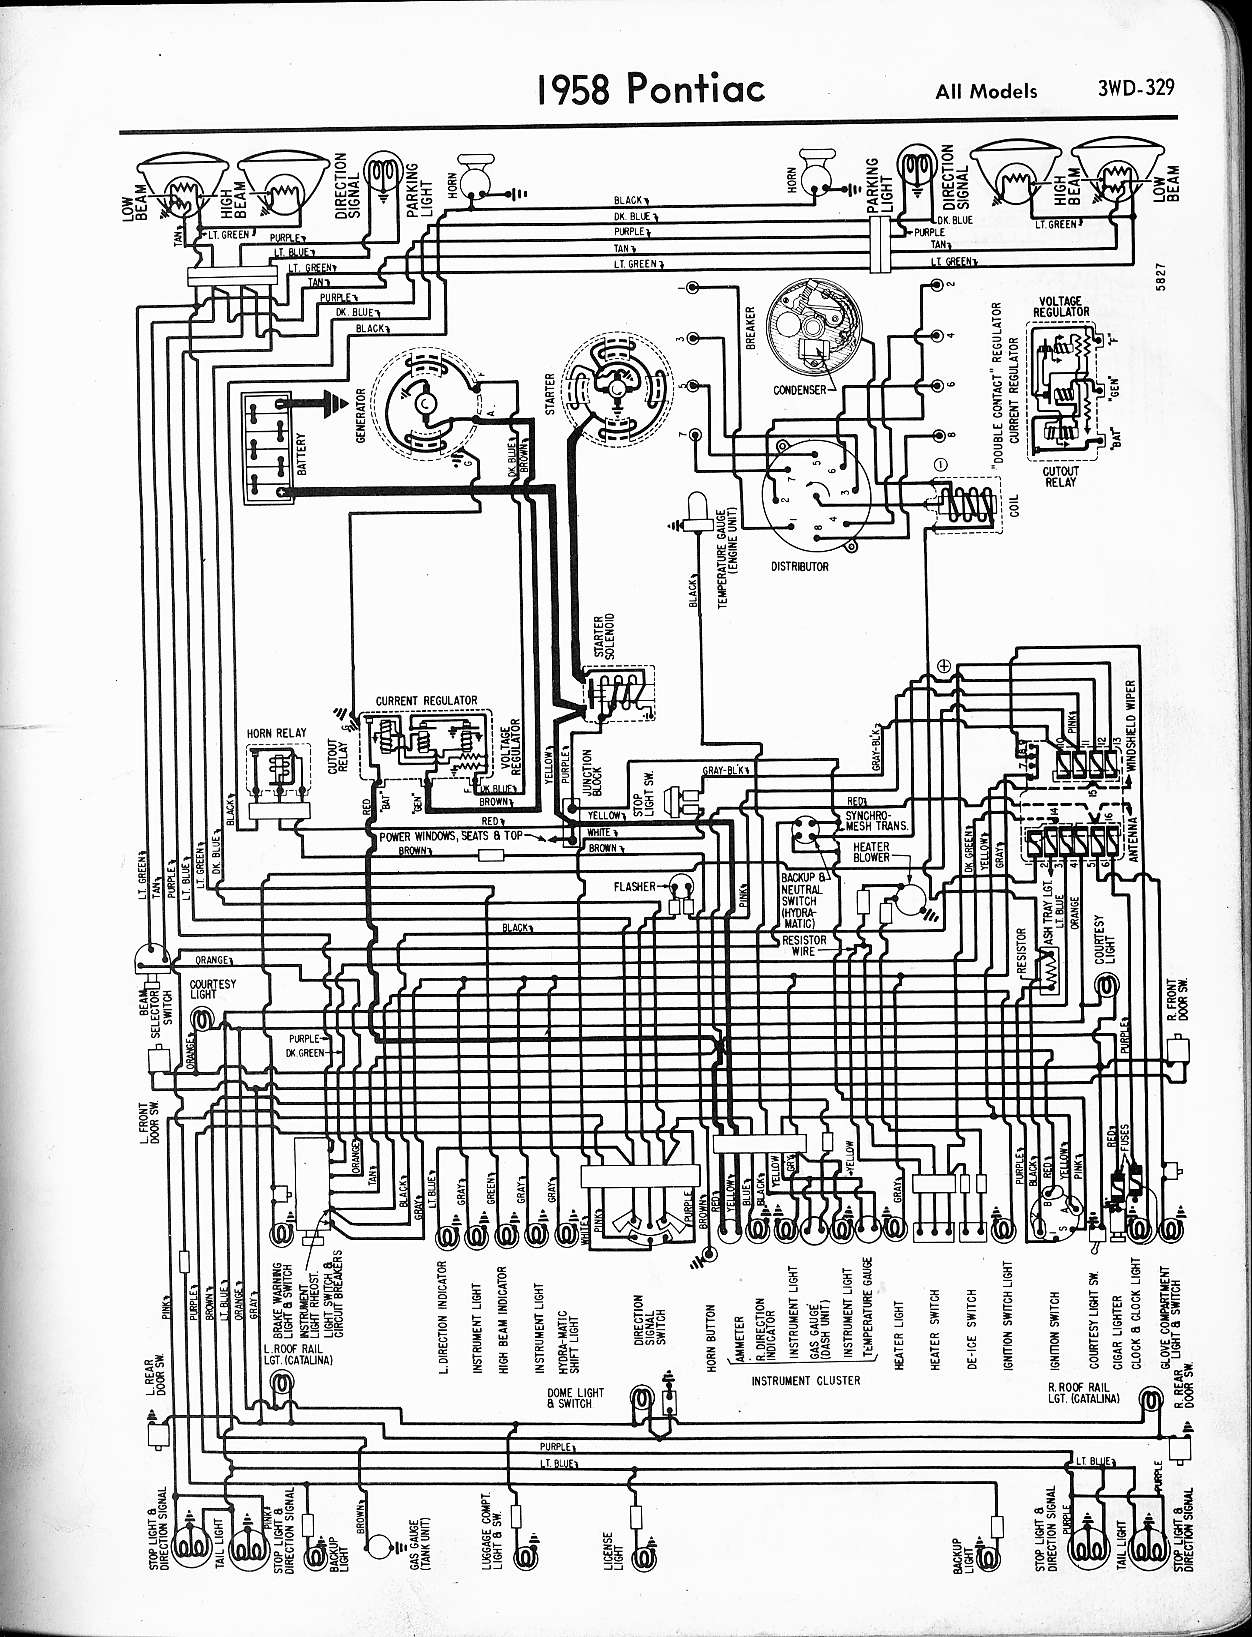 1977 Pontiac Catalina Wiring Diagram | Wiring Diagram